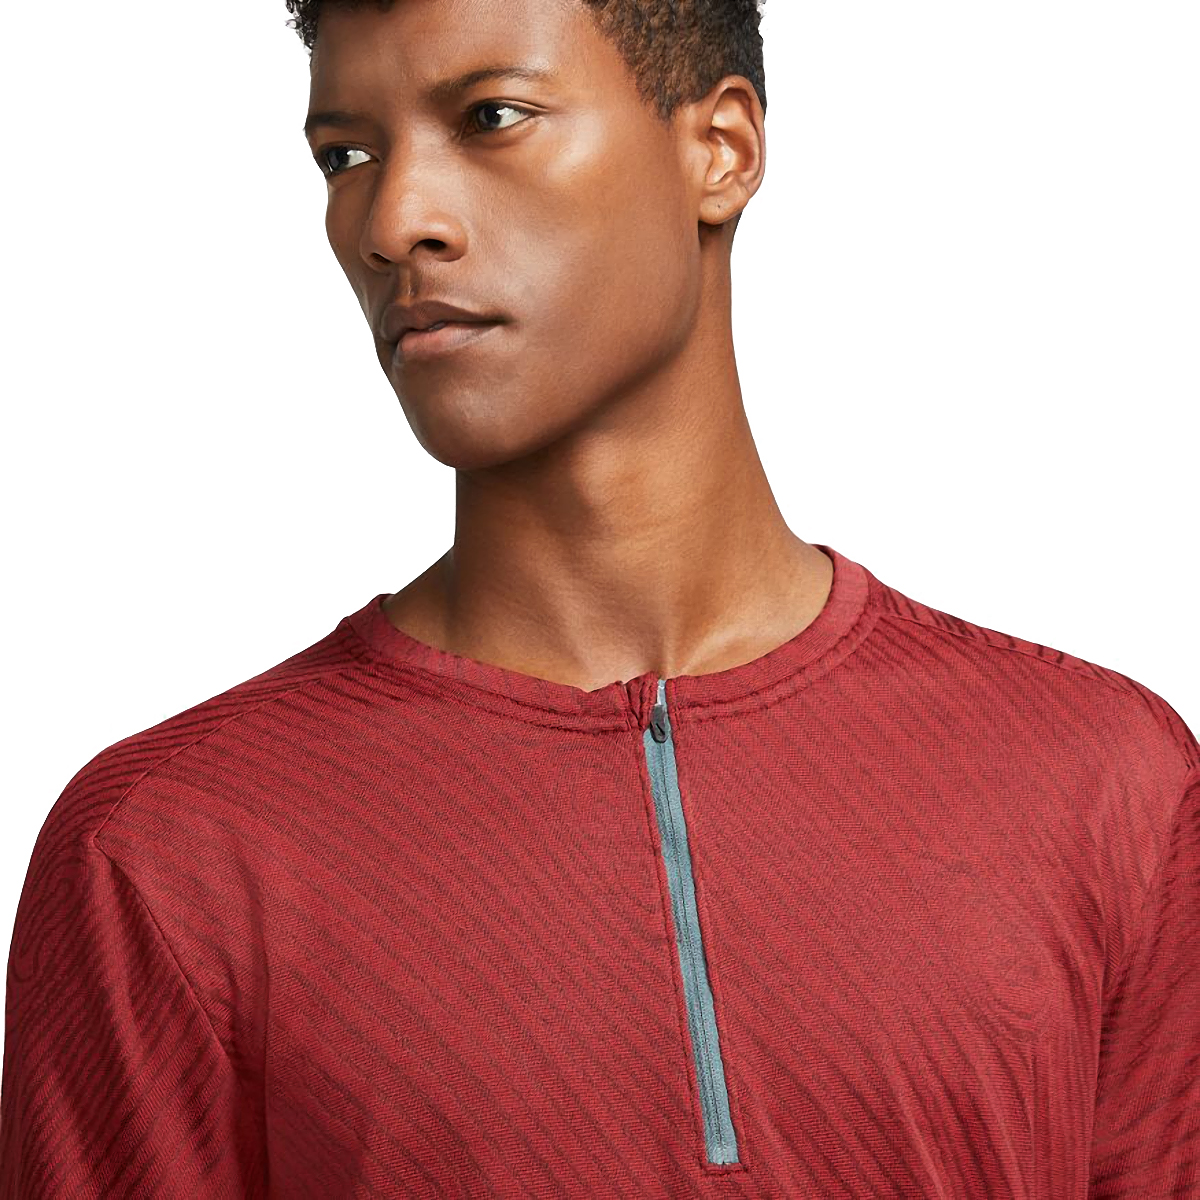 Men's Nike Dri-FIT Element 1/2-Zip Trail Running Top - Color: Dark Cayenne/Bronze Eclipse - Size: S, Dark Cayenne/Bronze Eclipse, large, image 4